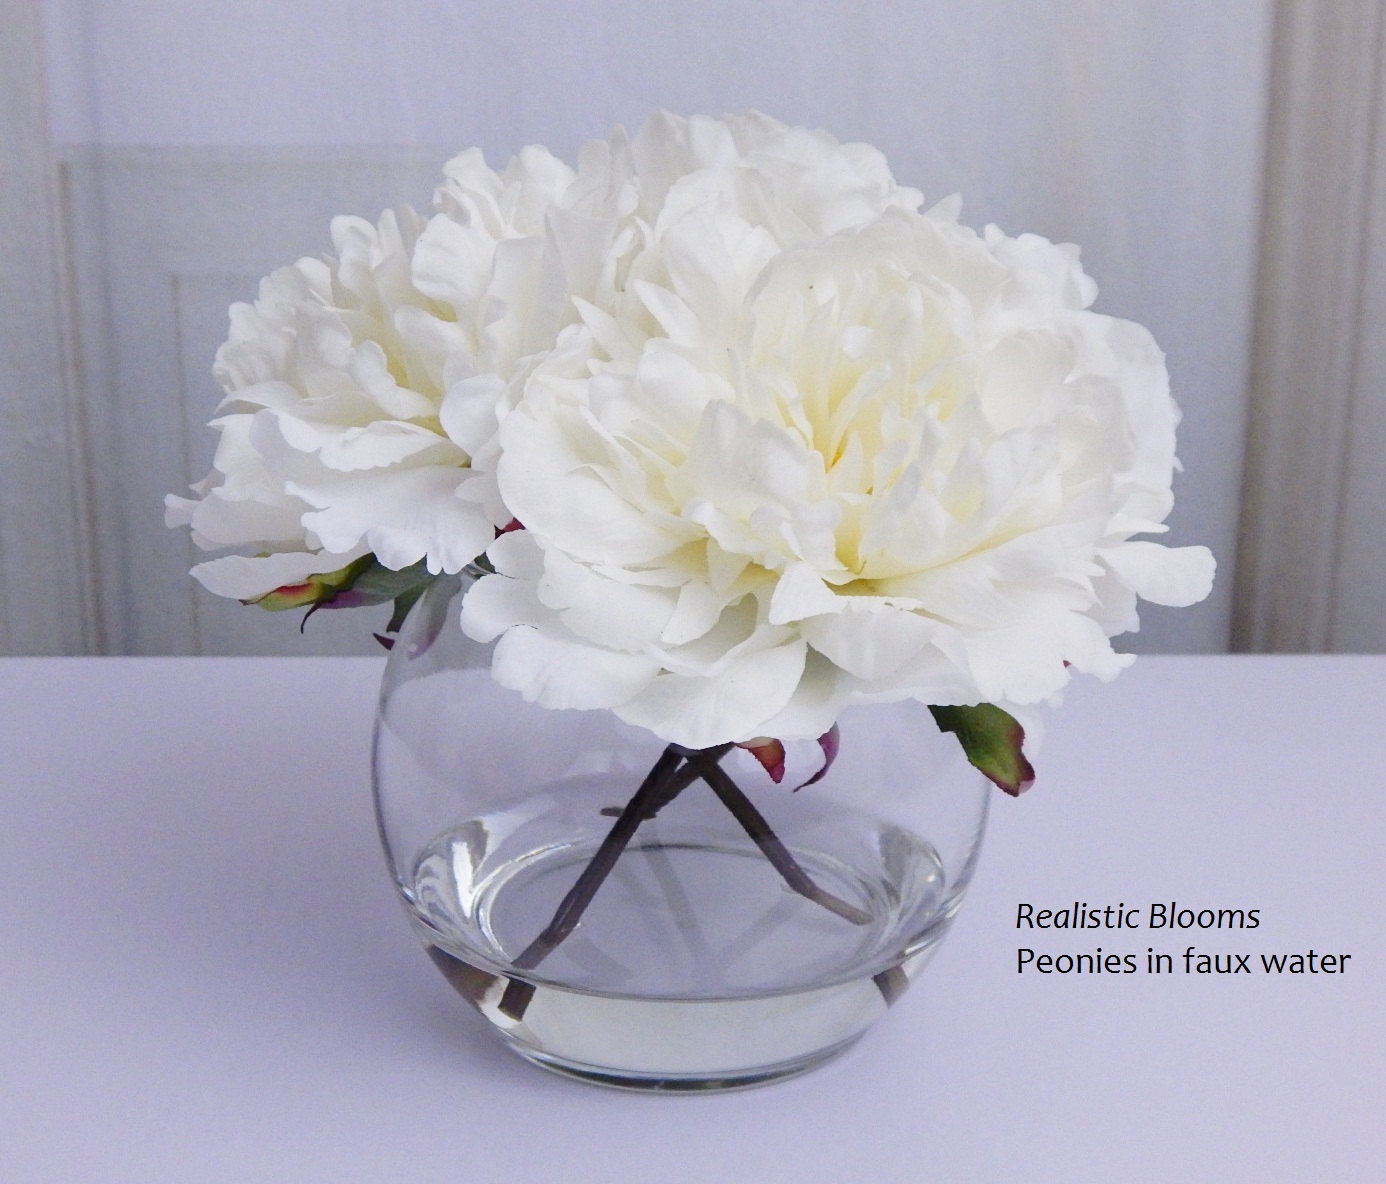 Whiteoffwhite silk peonies glass vase faux water acrylic whiteoffwhite silk peonies glass vase faux water acrylic illusion real touch flowers floral arrangement centerpiece home gift reviewsmspy